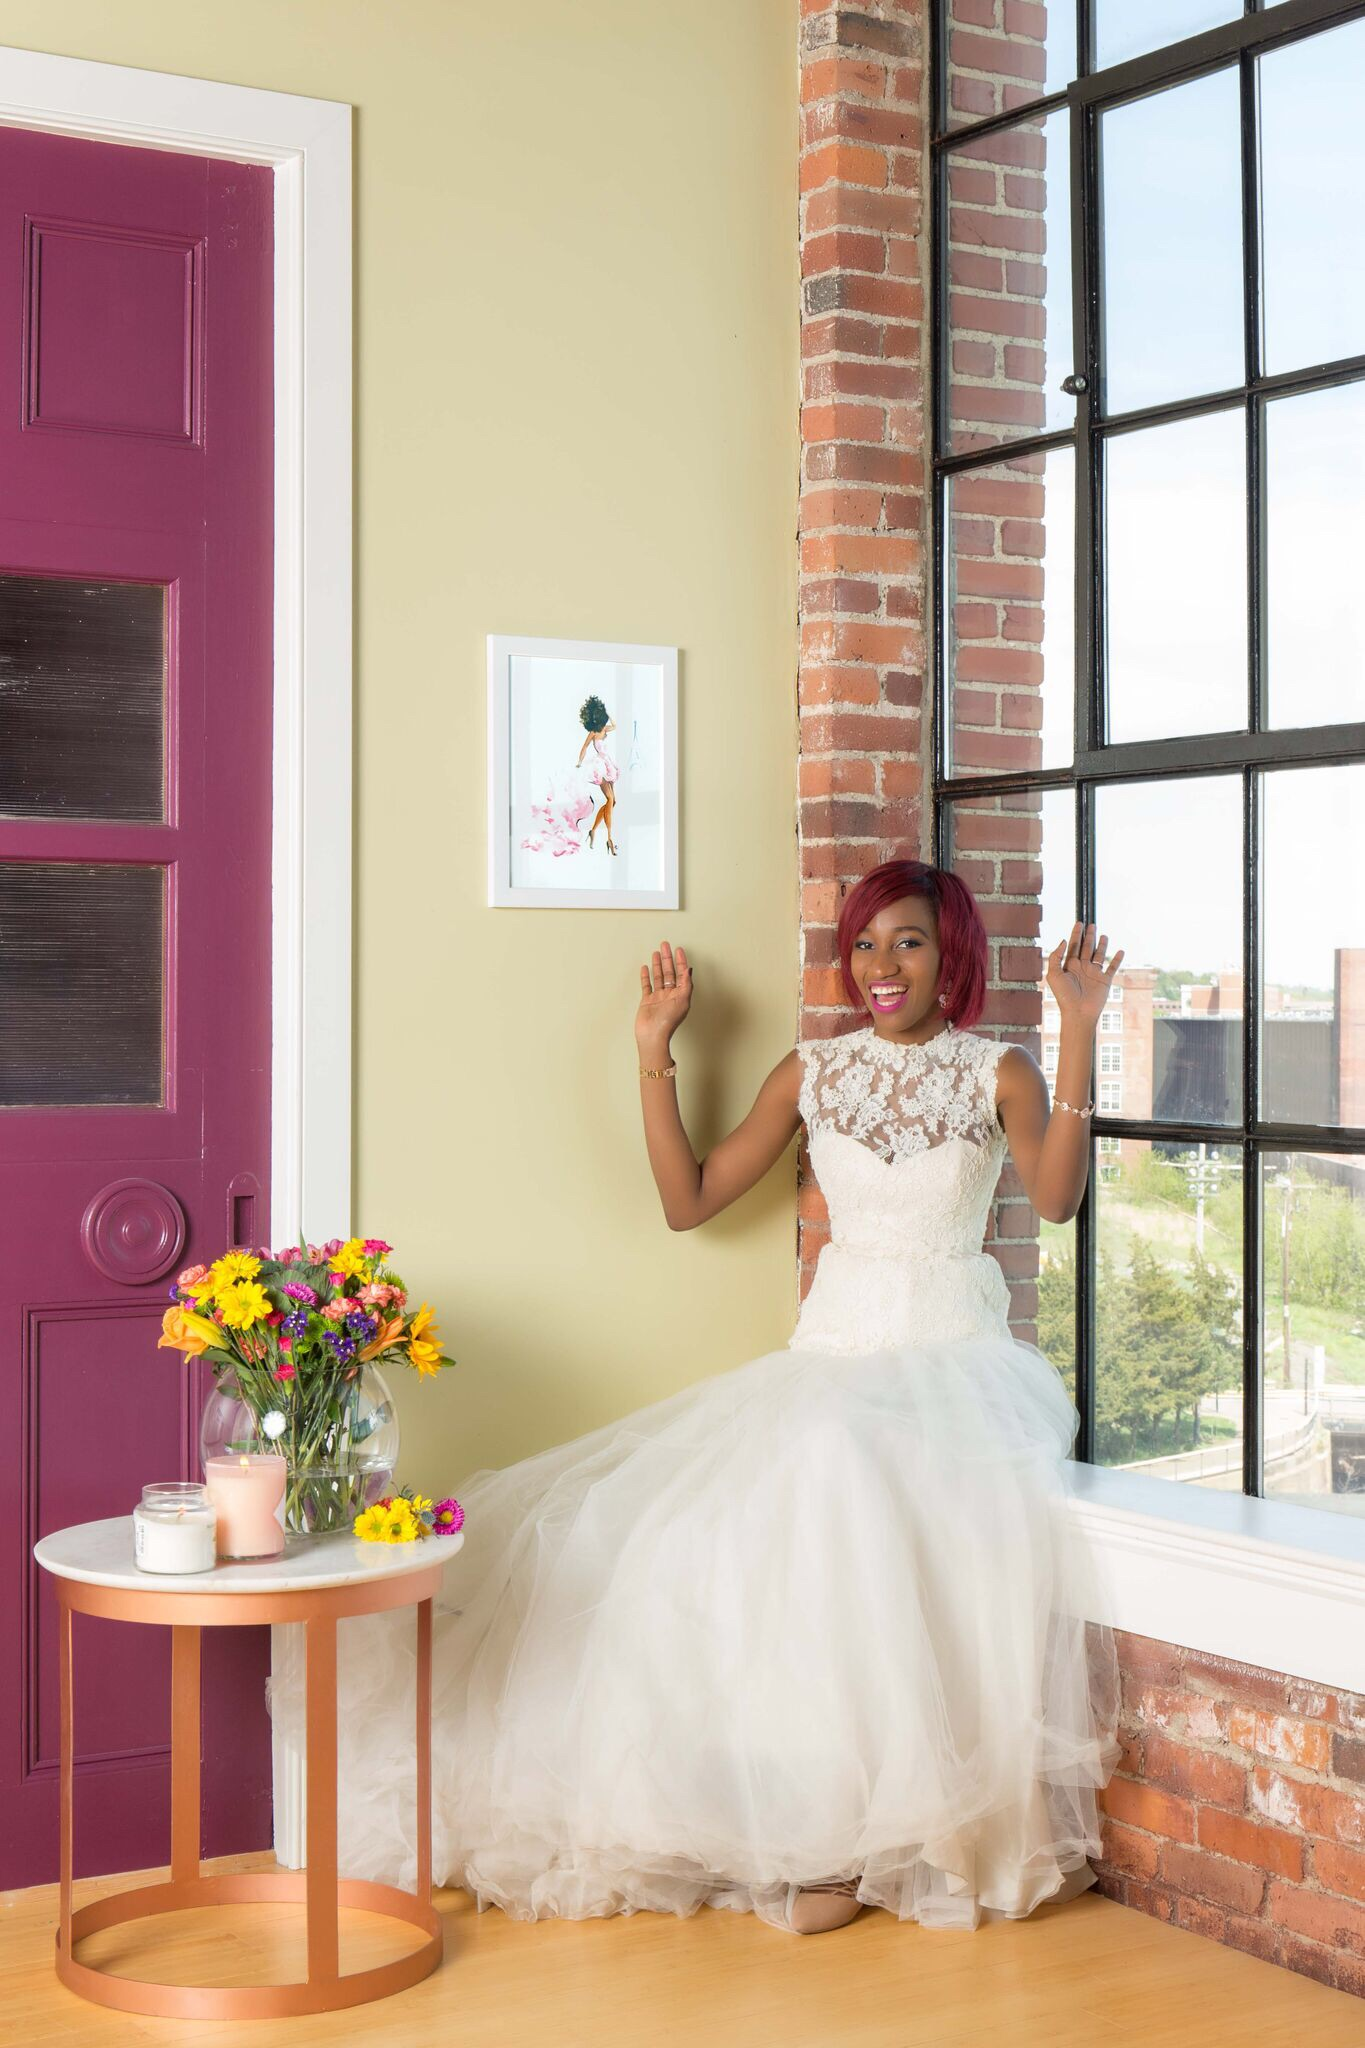 What to do on sunny Saturday afternoons: fool around in your wedding dress.